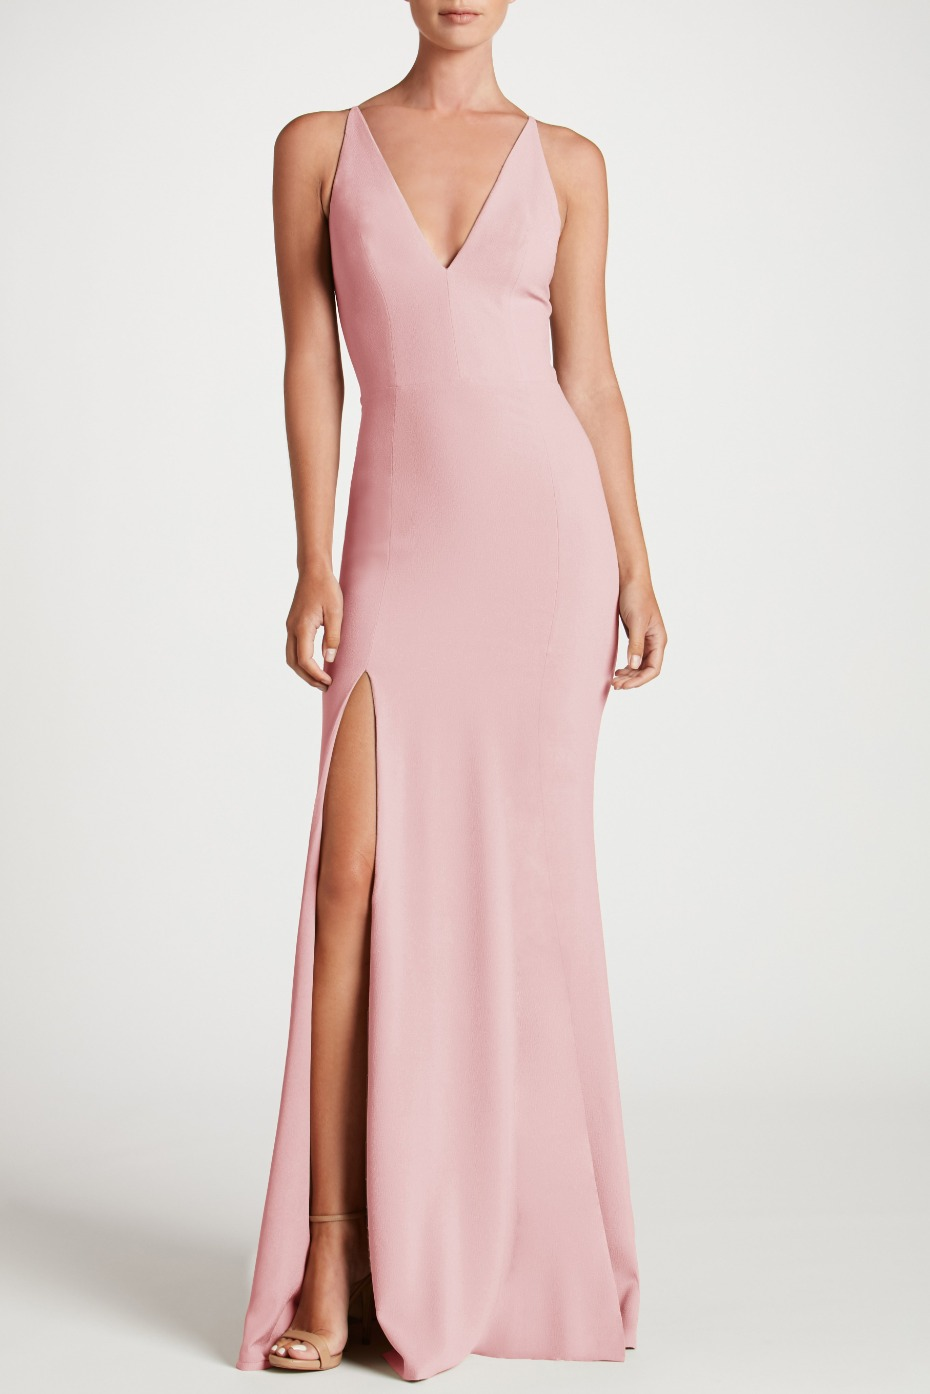 dress-the-population-iris-crepe-side-slit-gown-in